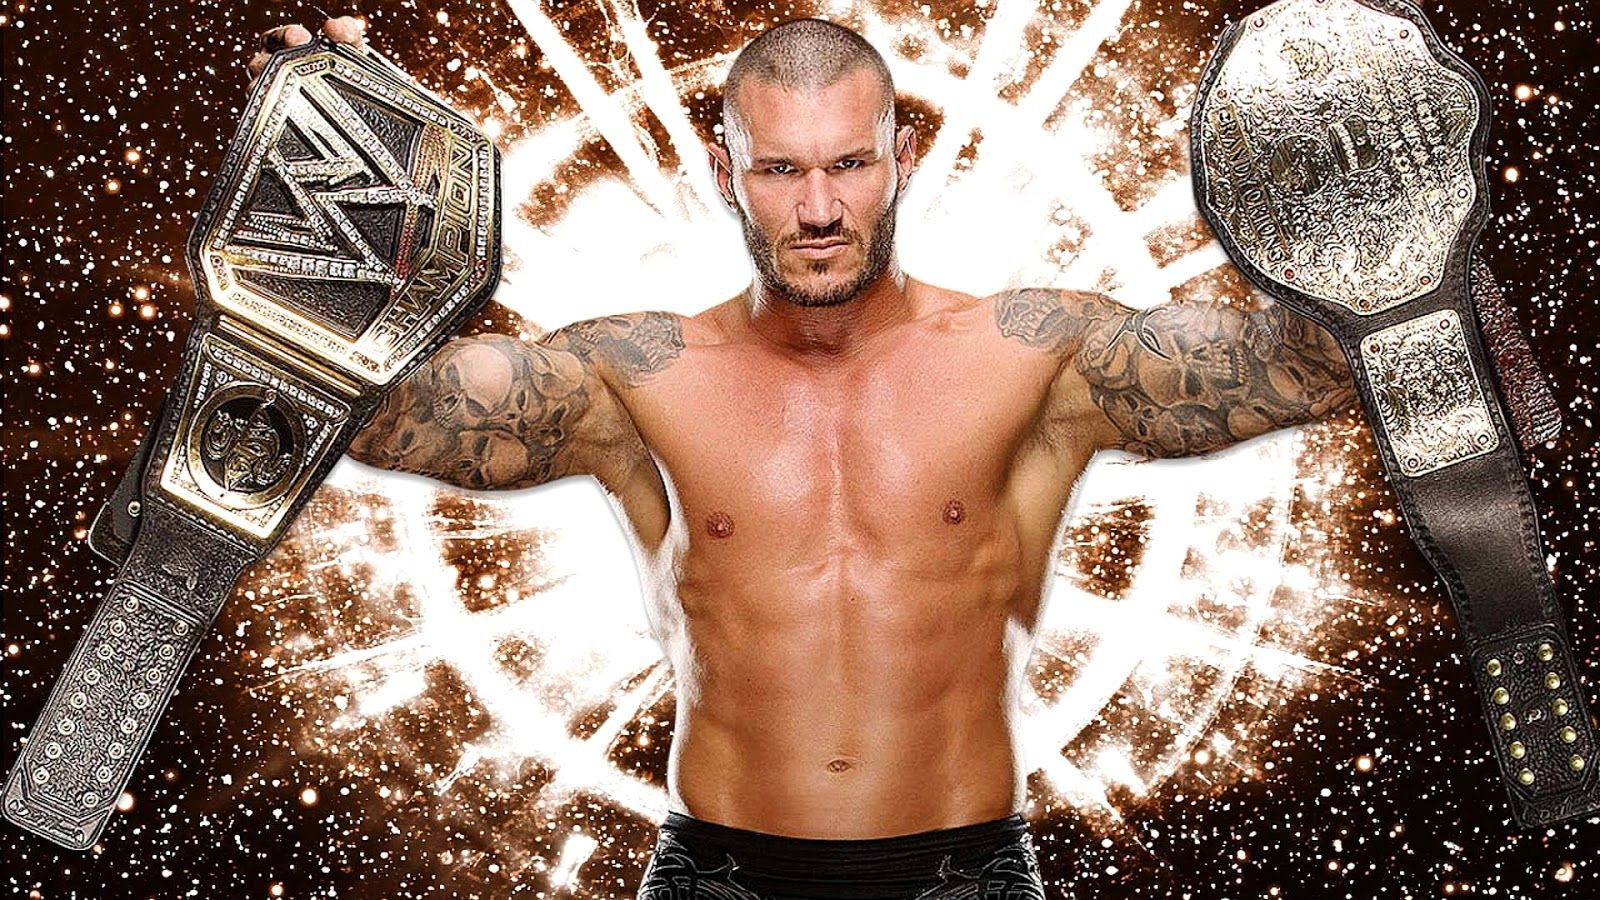 Randy Orton Wallpapers Hd Download Free 1080p Randy Orton Randy